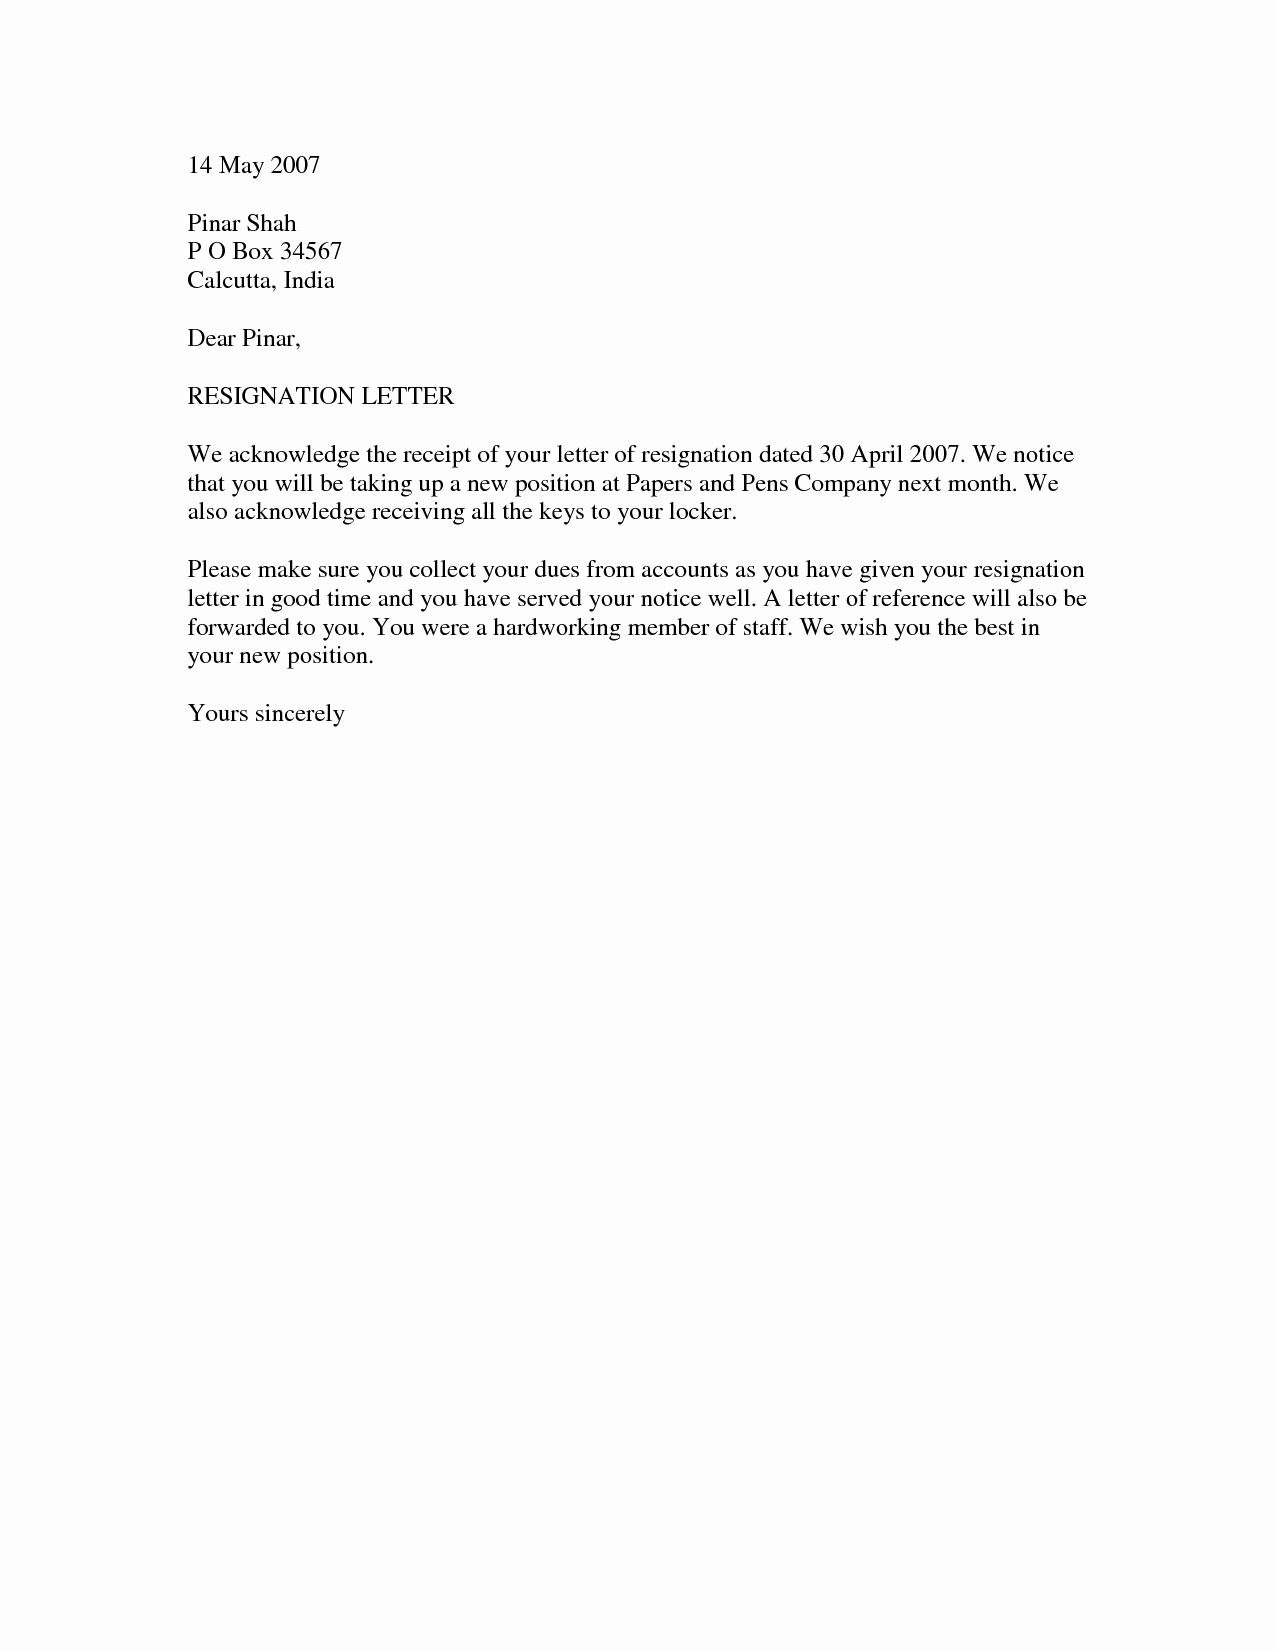 Business Letter format Microsoft Word Luxury Letter format In Word Best Template Collection